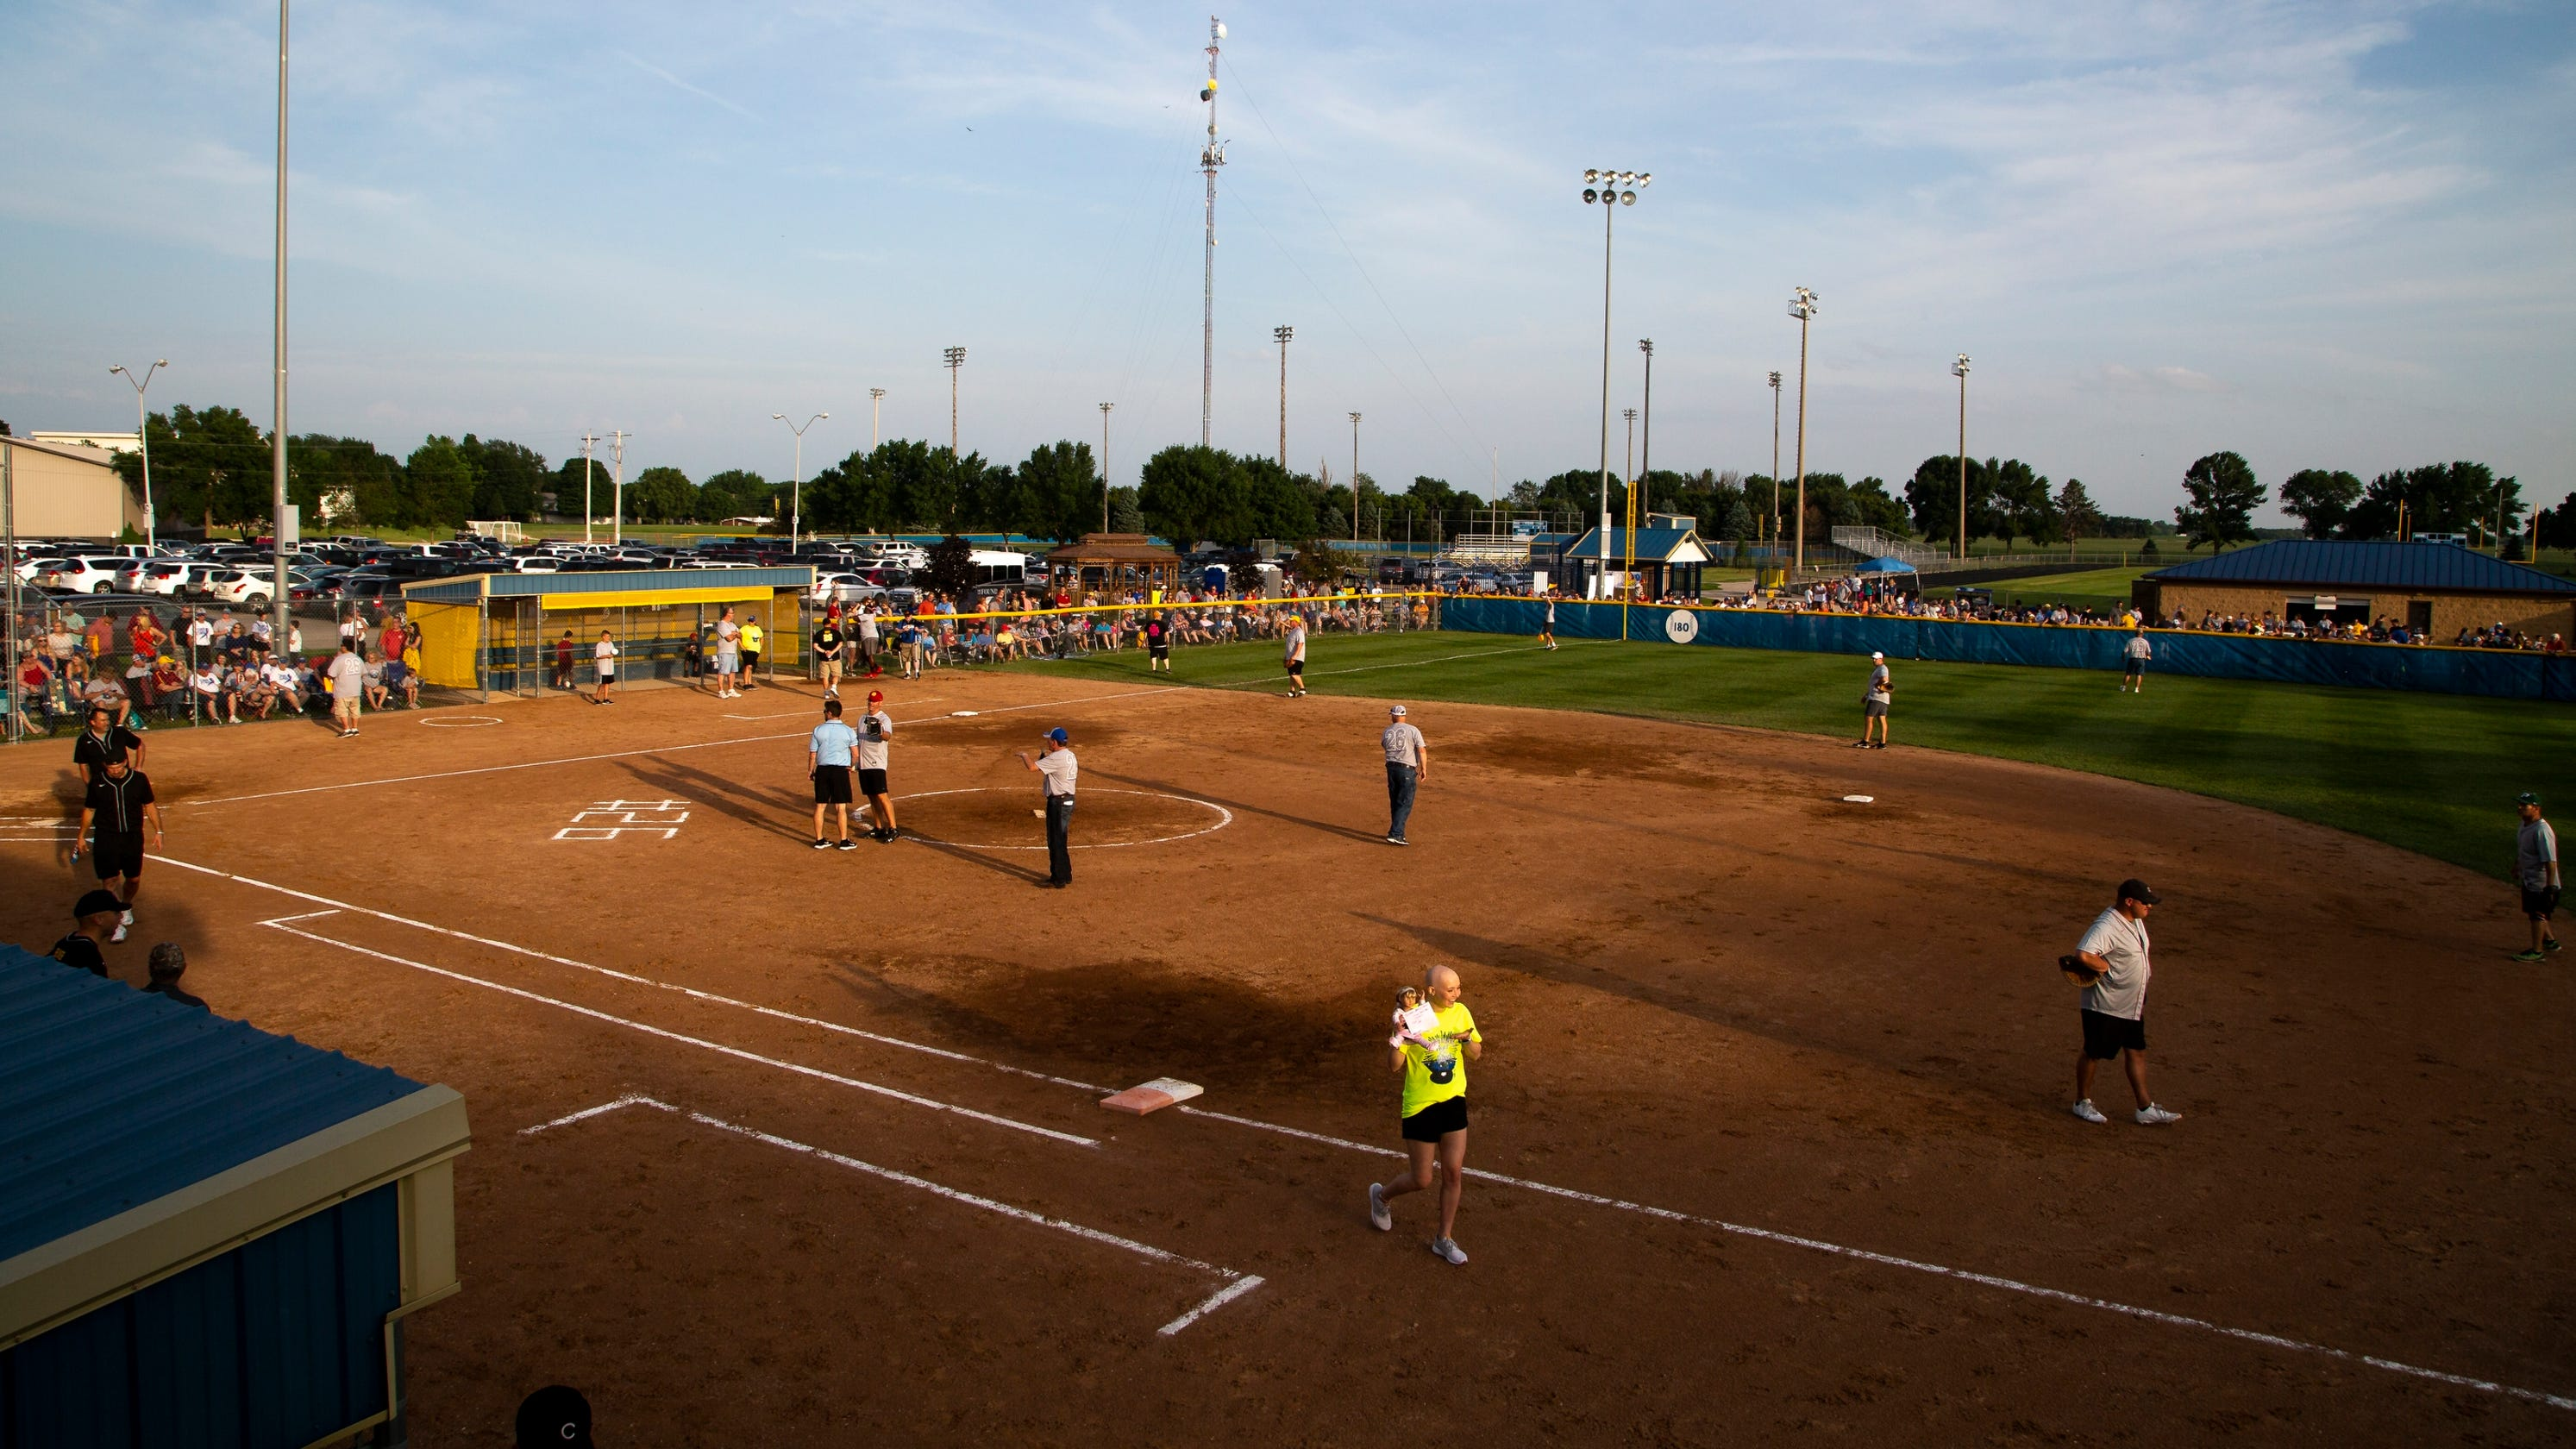 State softball: Updates and results from Class 1A, 2A, 3A